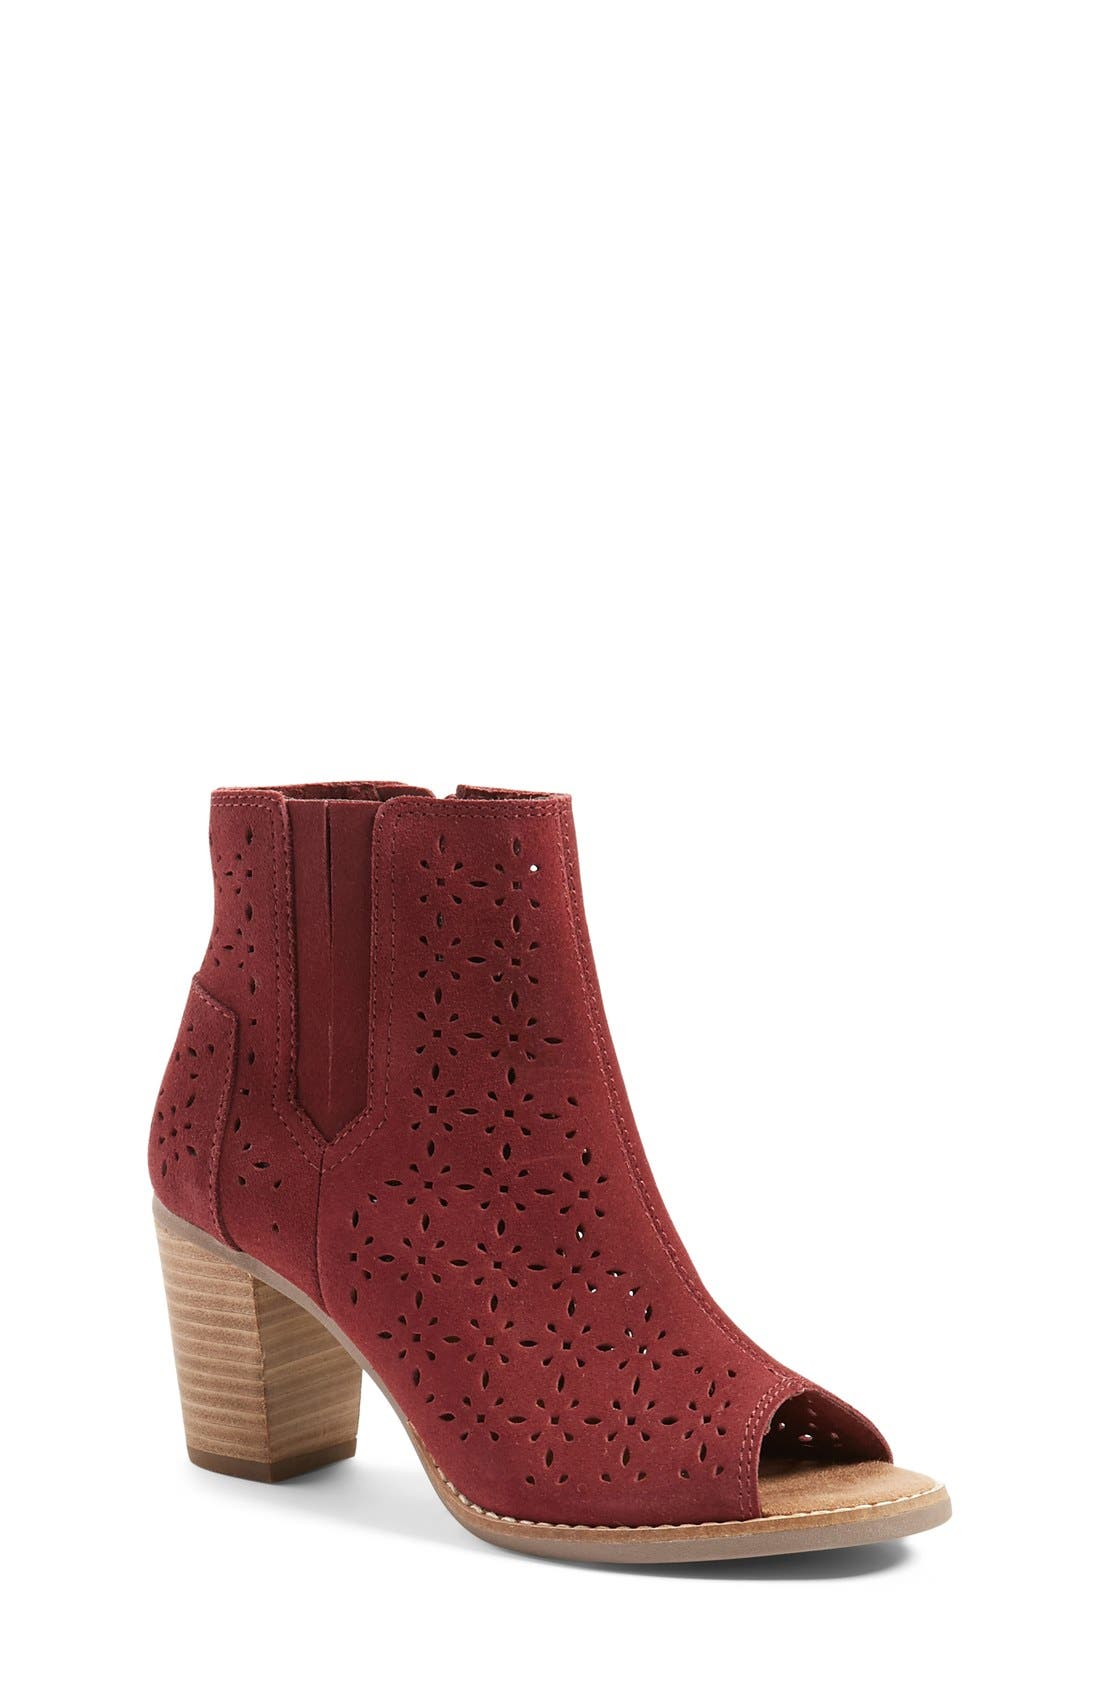 'Majorca' Peep Toe Bootie,                         Main,                         color, Burgundy Suede